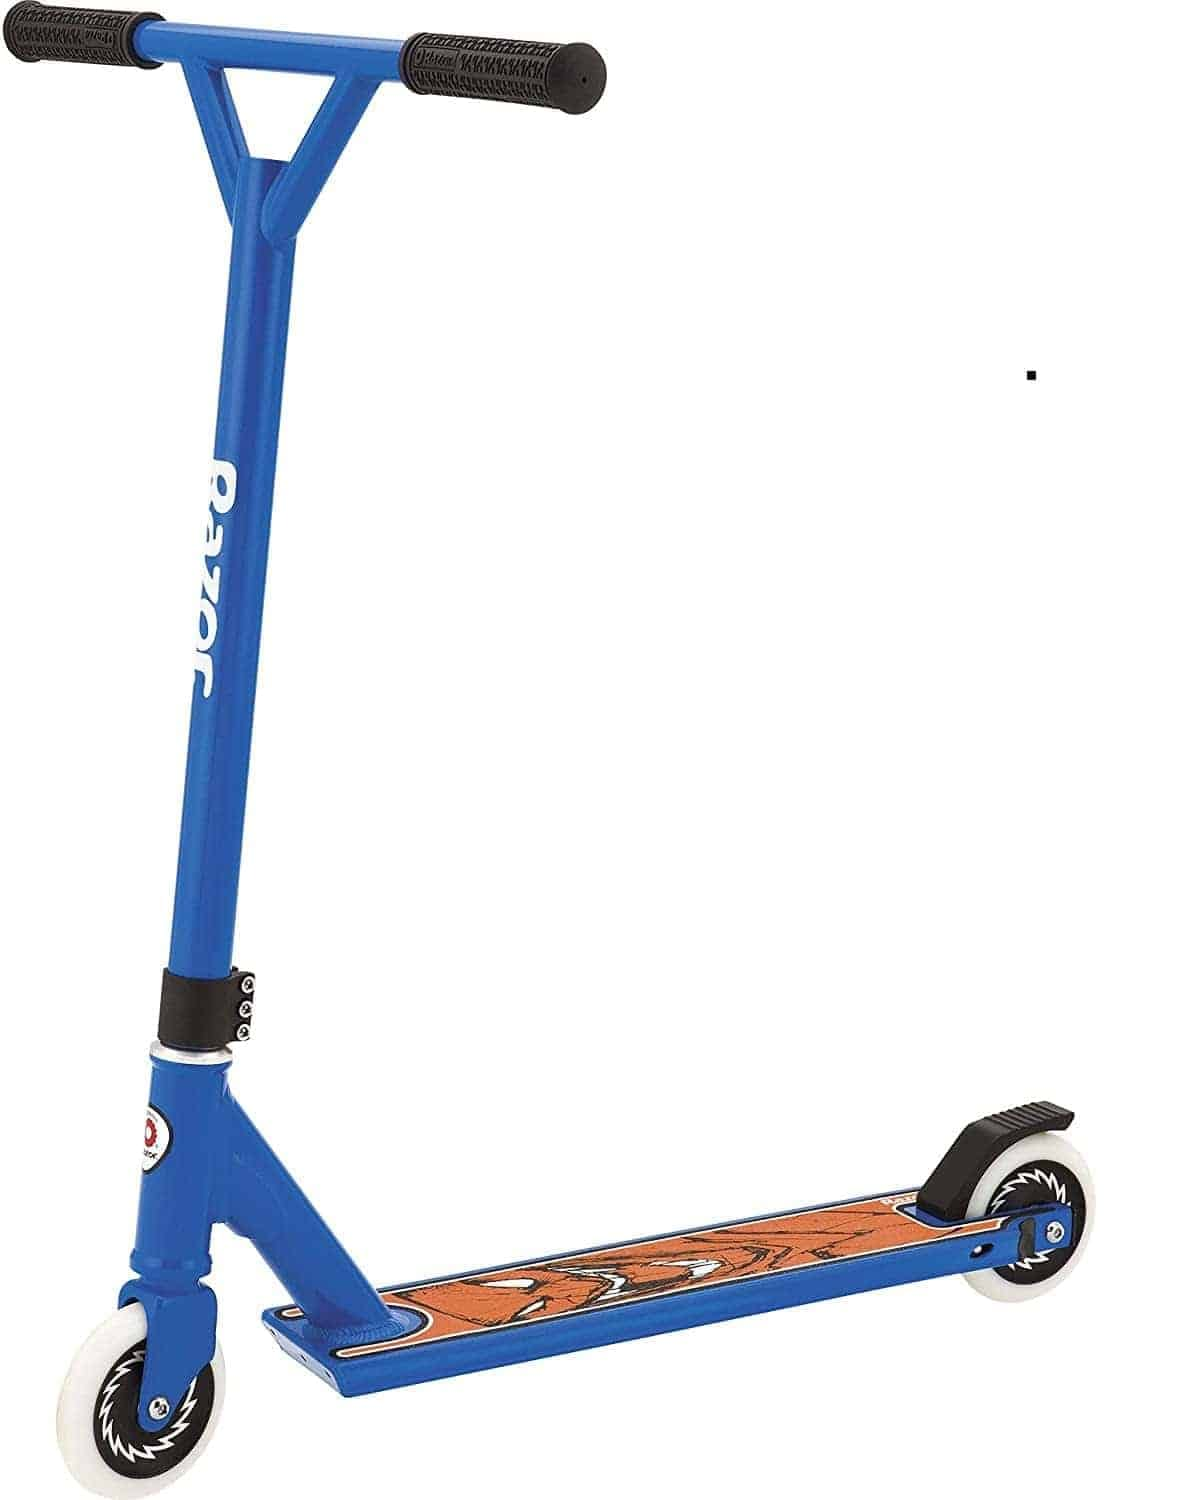 What are the Best Stunt Scooters Reviews For Beginners, Kids, And Adults In 2021? 8